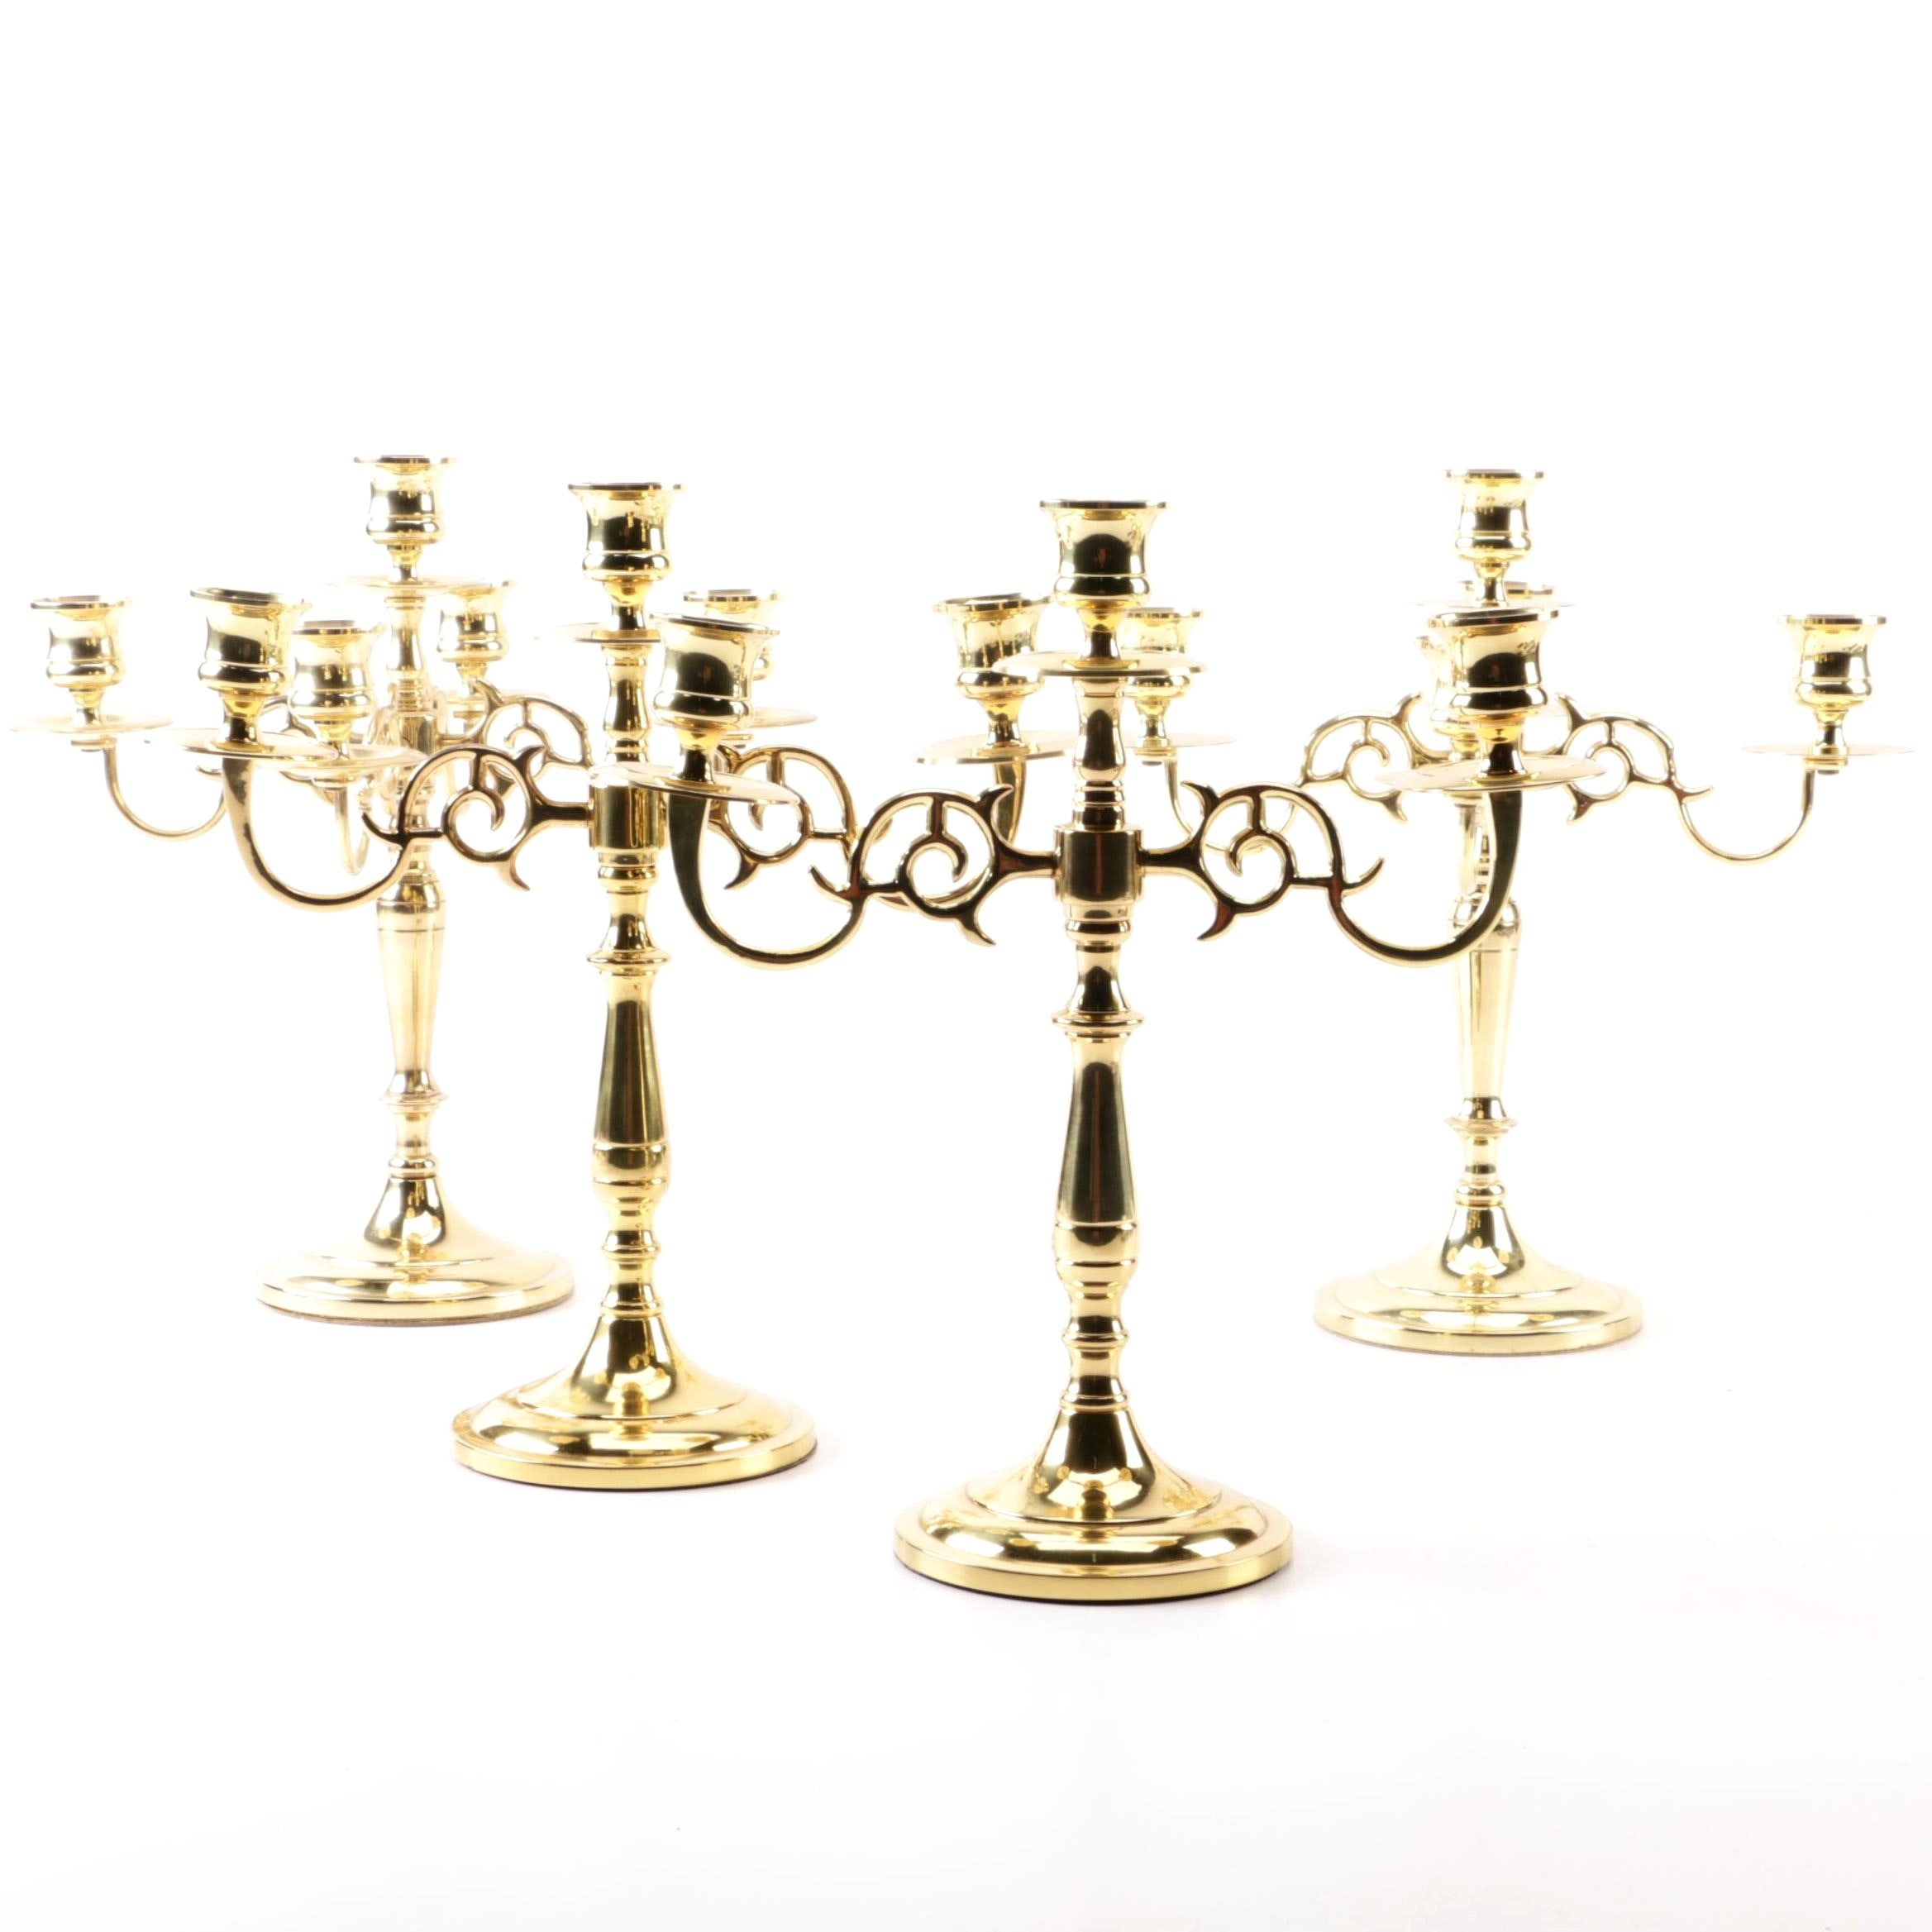 Baldwin and Colonial Trust Brass Candelabras